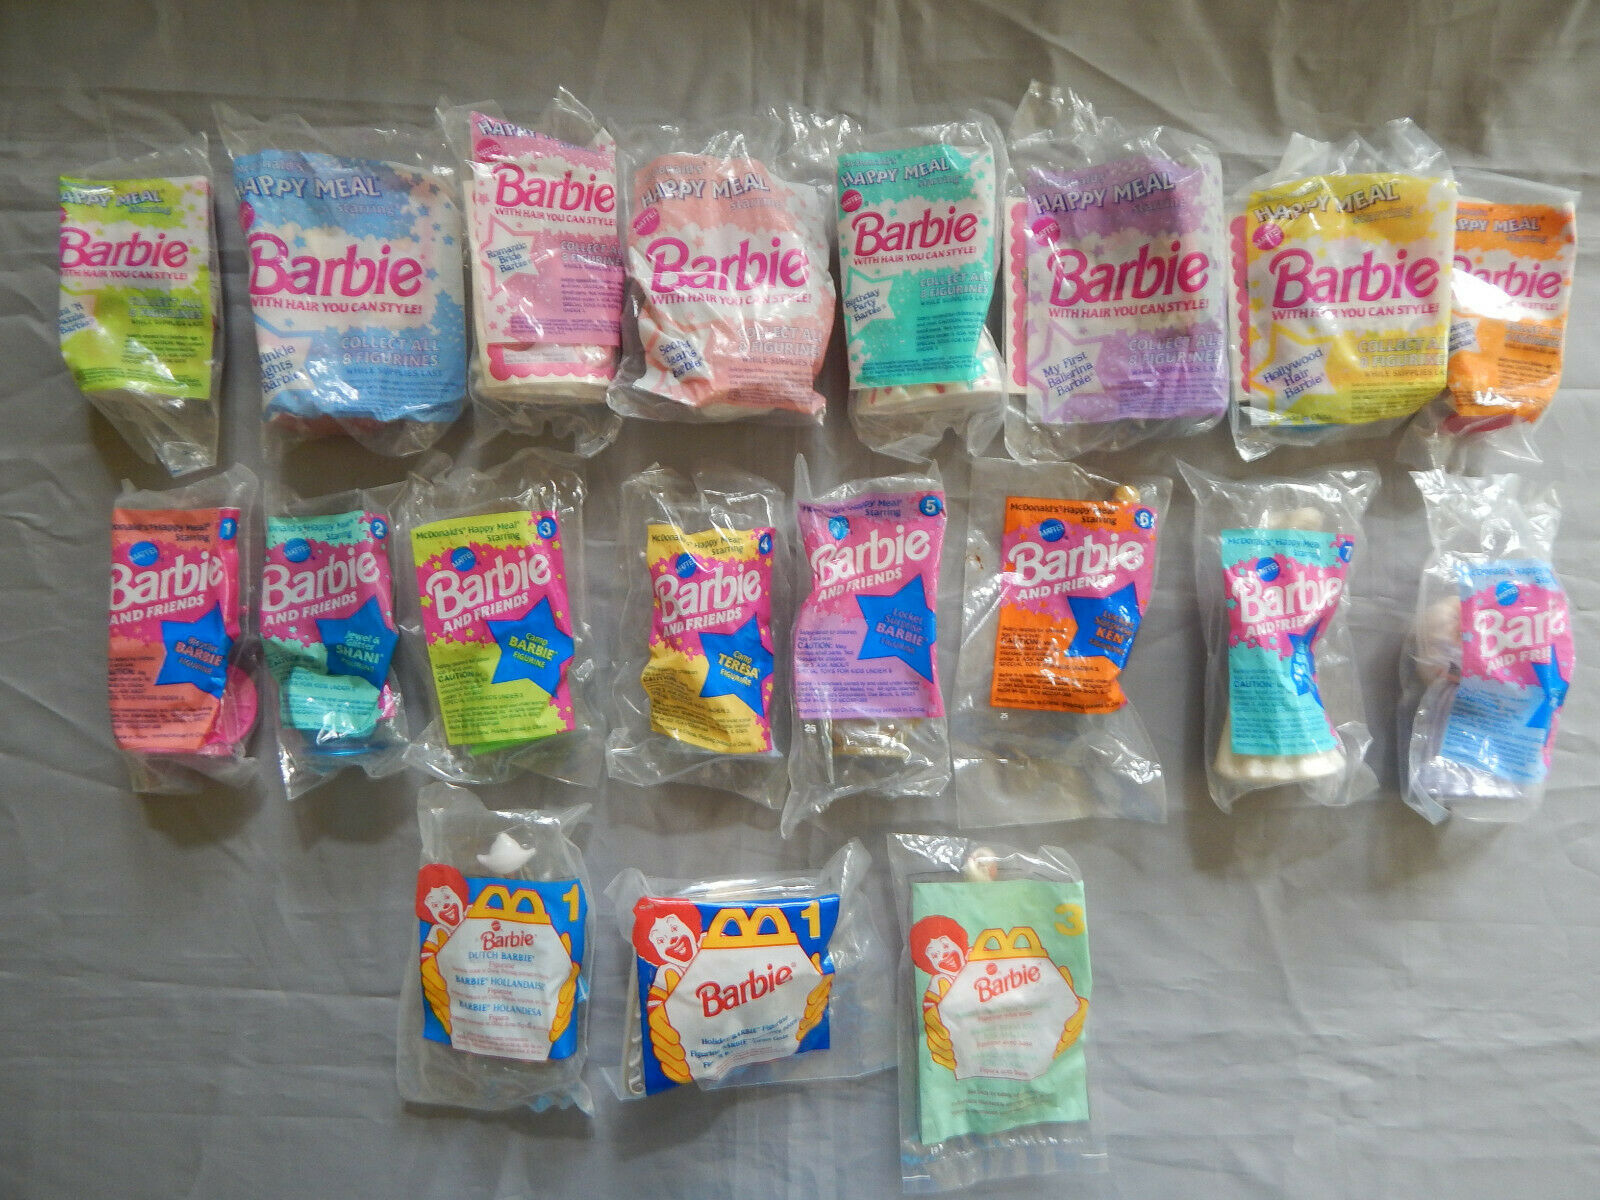 19 mcdonalds toys ALL BARBIE dolls 2 complete sets 1992 1994 + extras happy meal